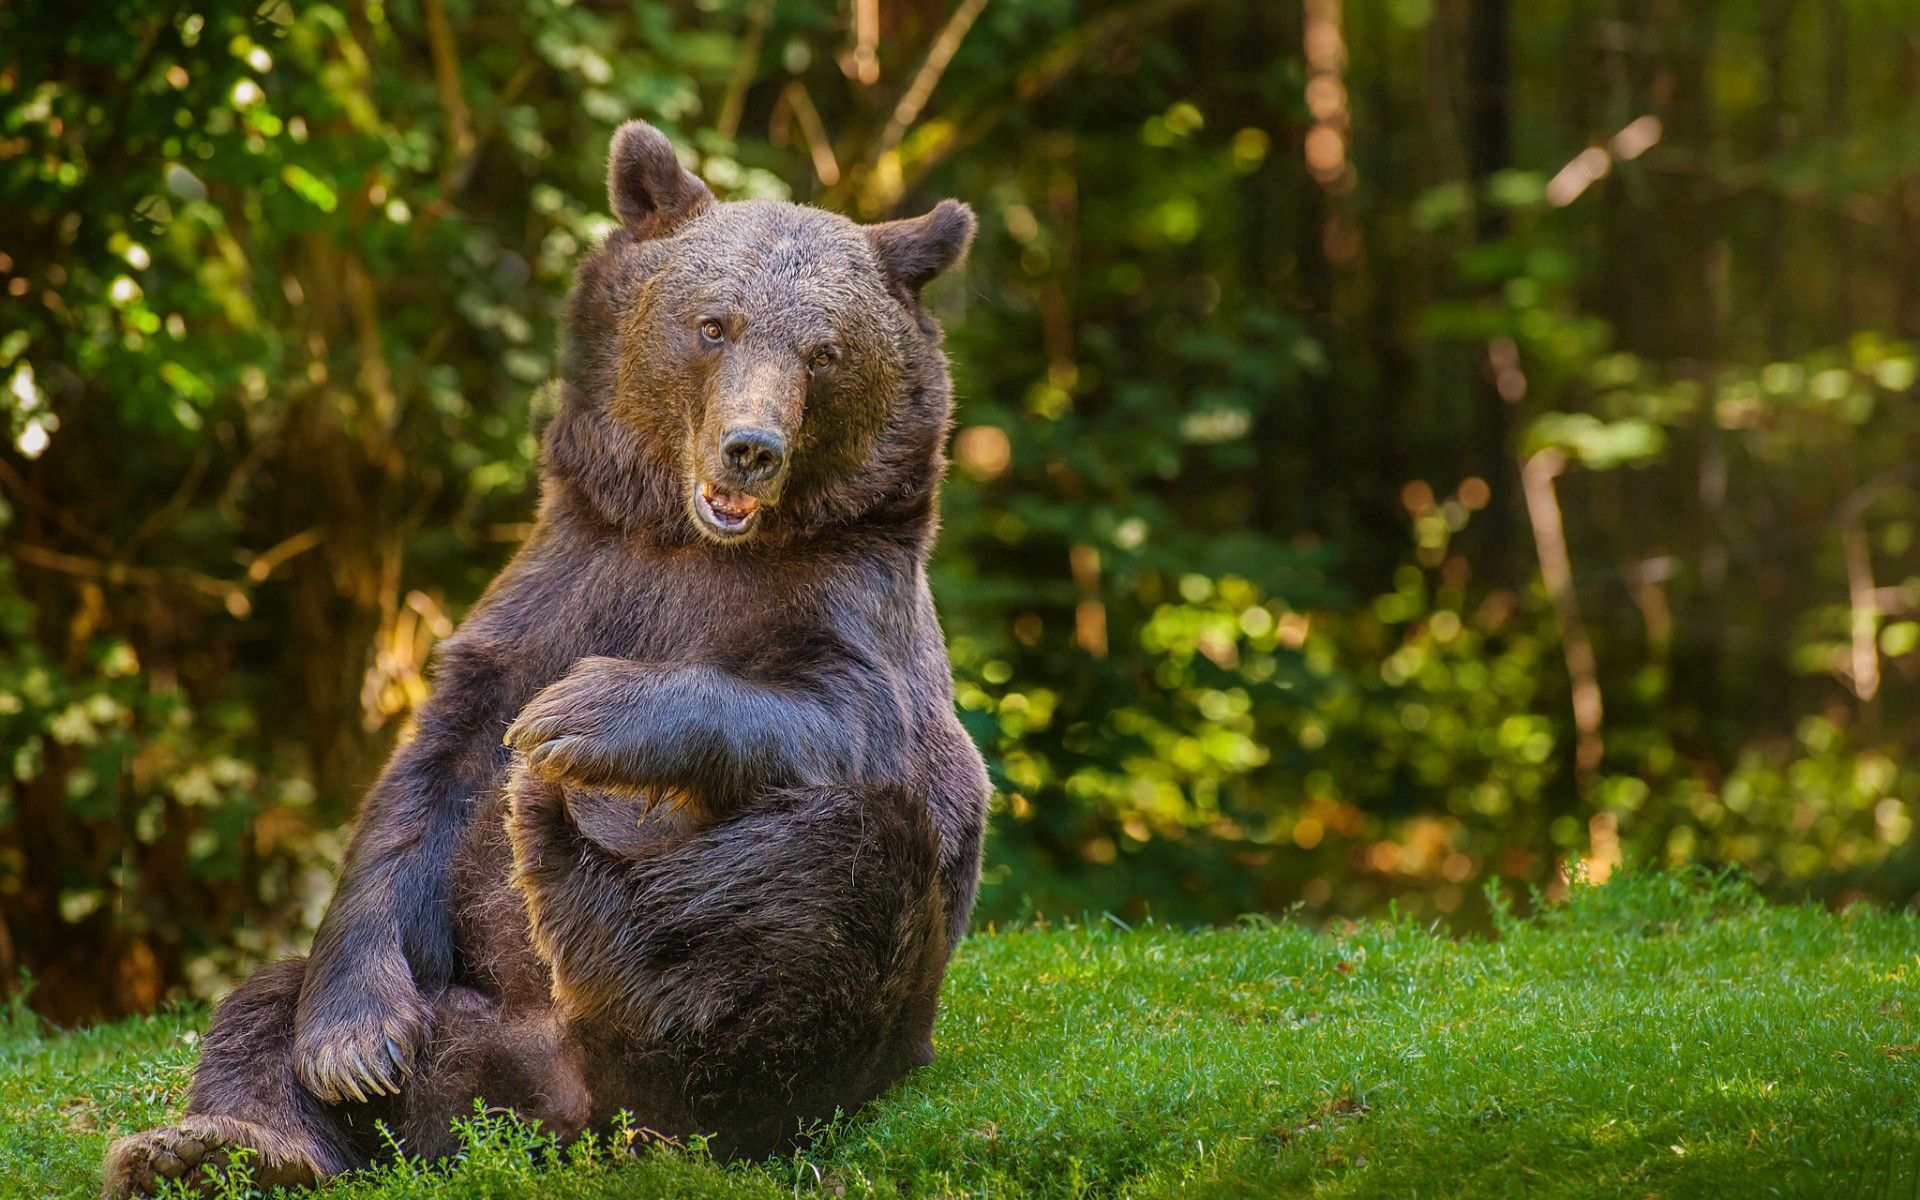 114728 download wallpaper Animals, Bear, Grass, Trees, Forest, Cool screensavers and pictures for free